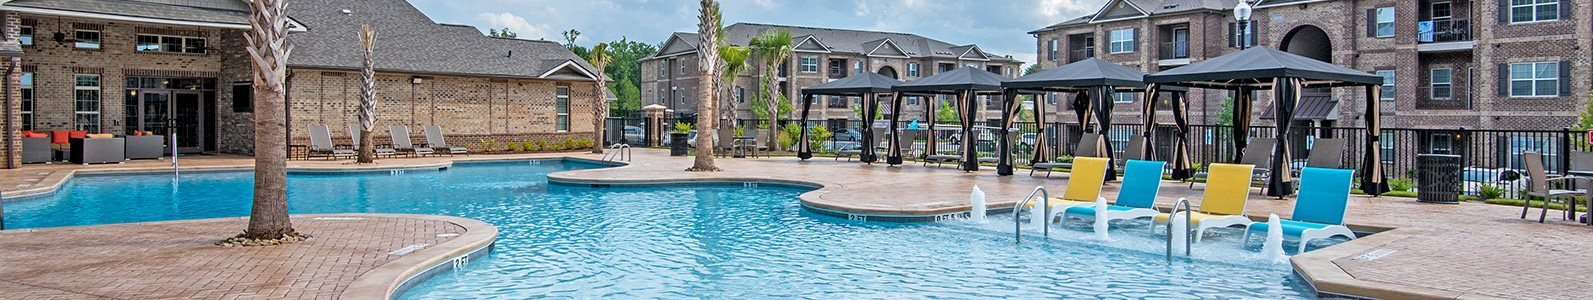 Resort-Style Pool at Maystone at Wakefield, North Carolina, 27614